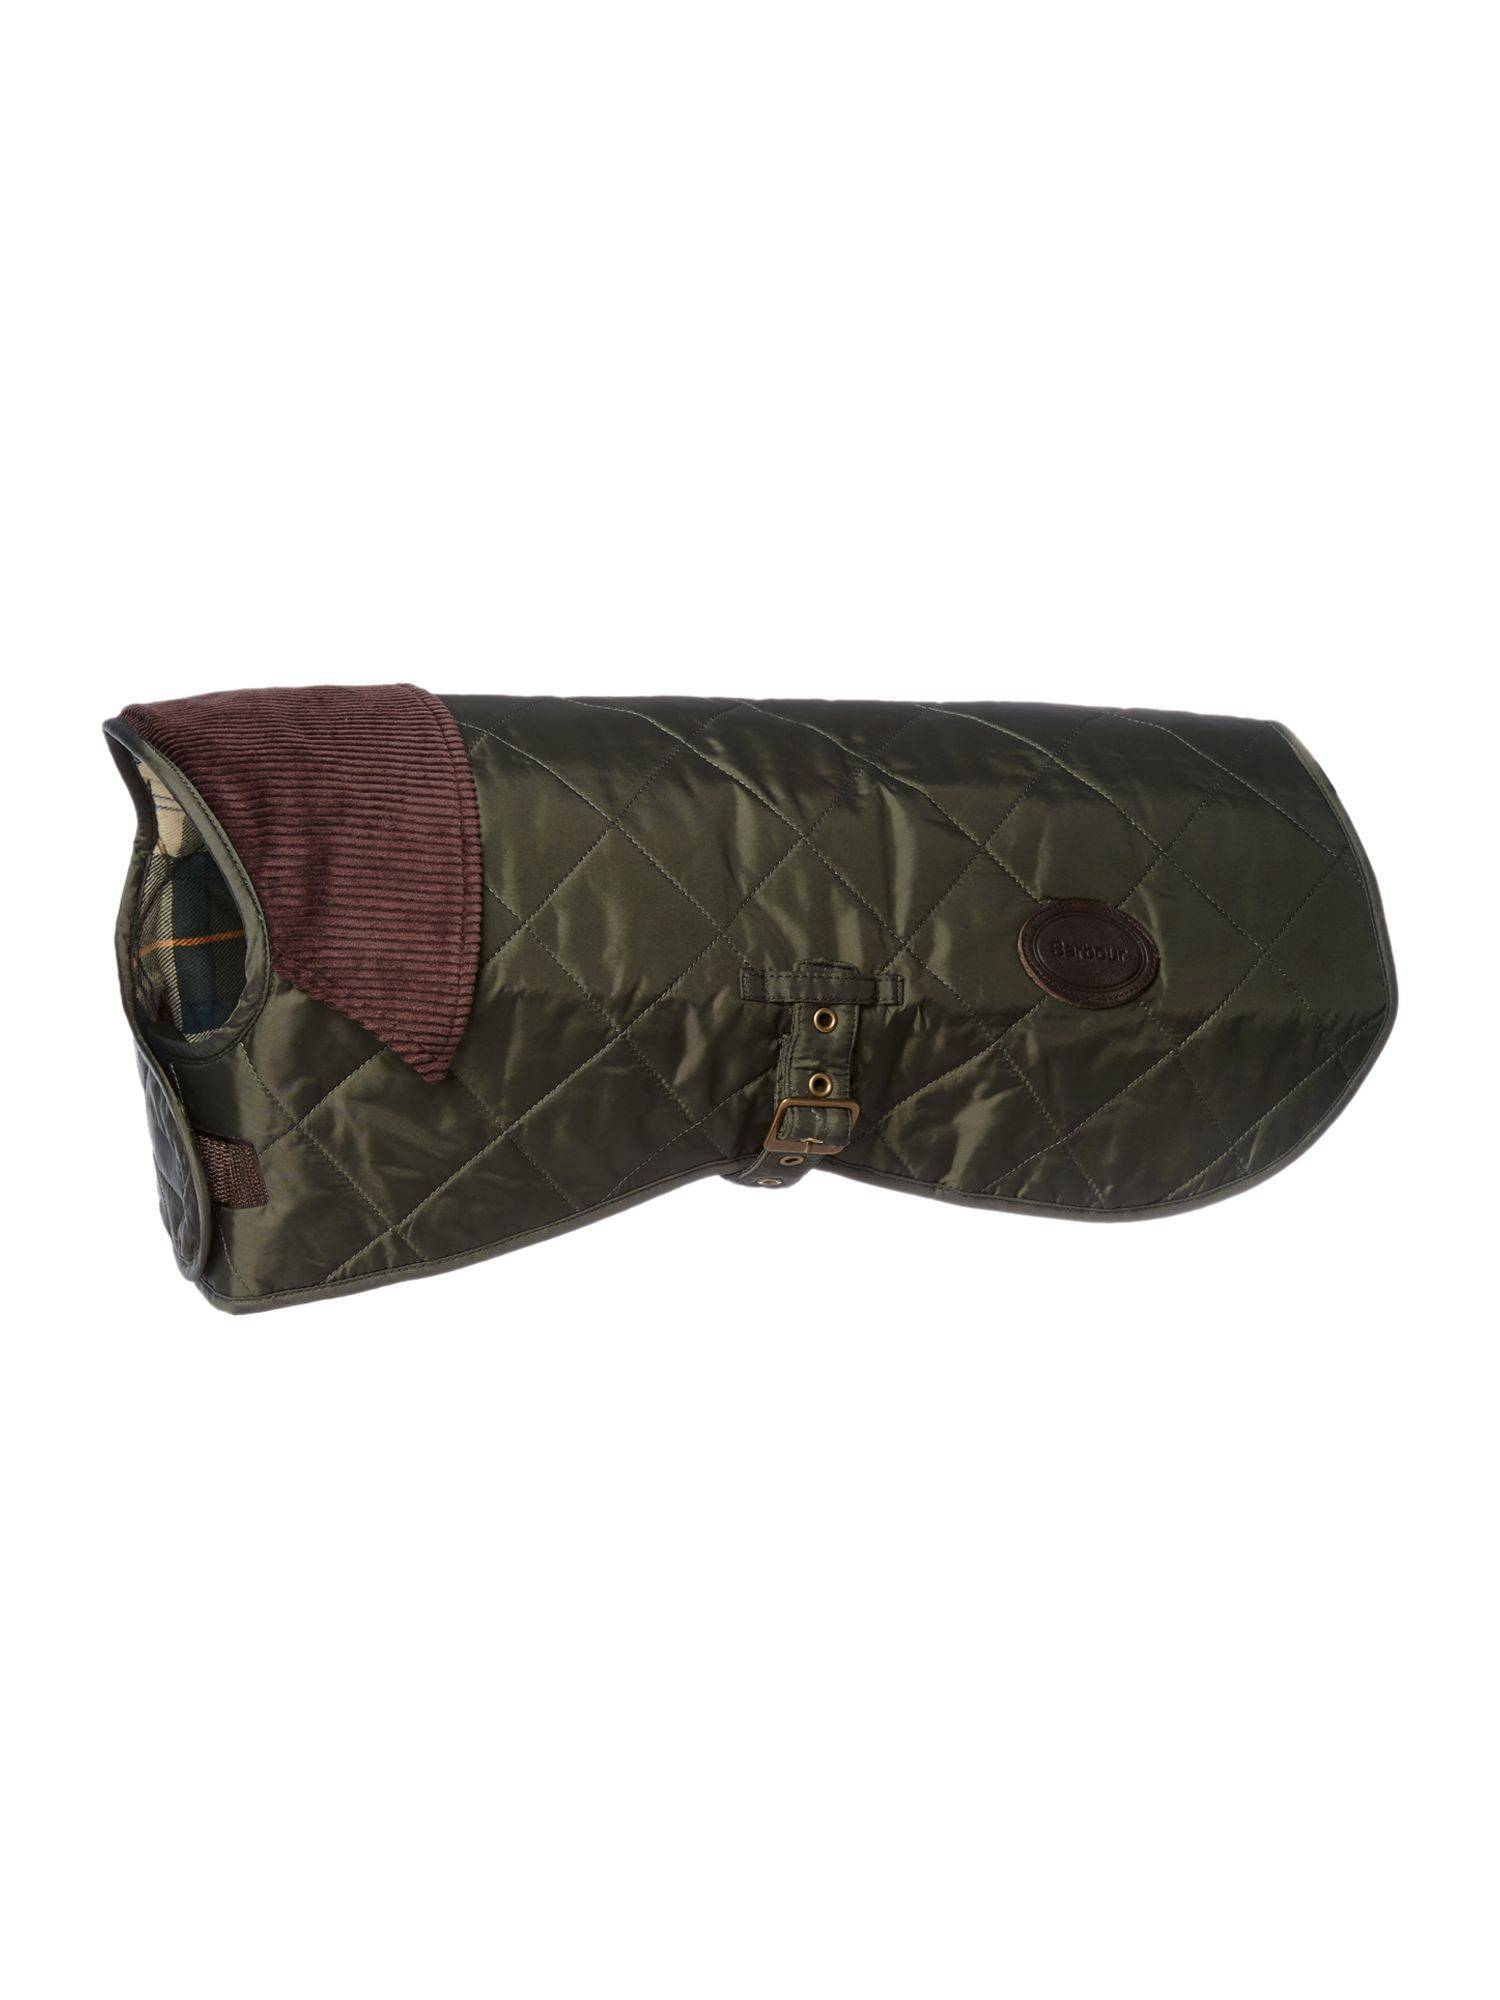 Barbour Quilted dog coat (Small)